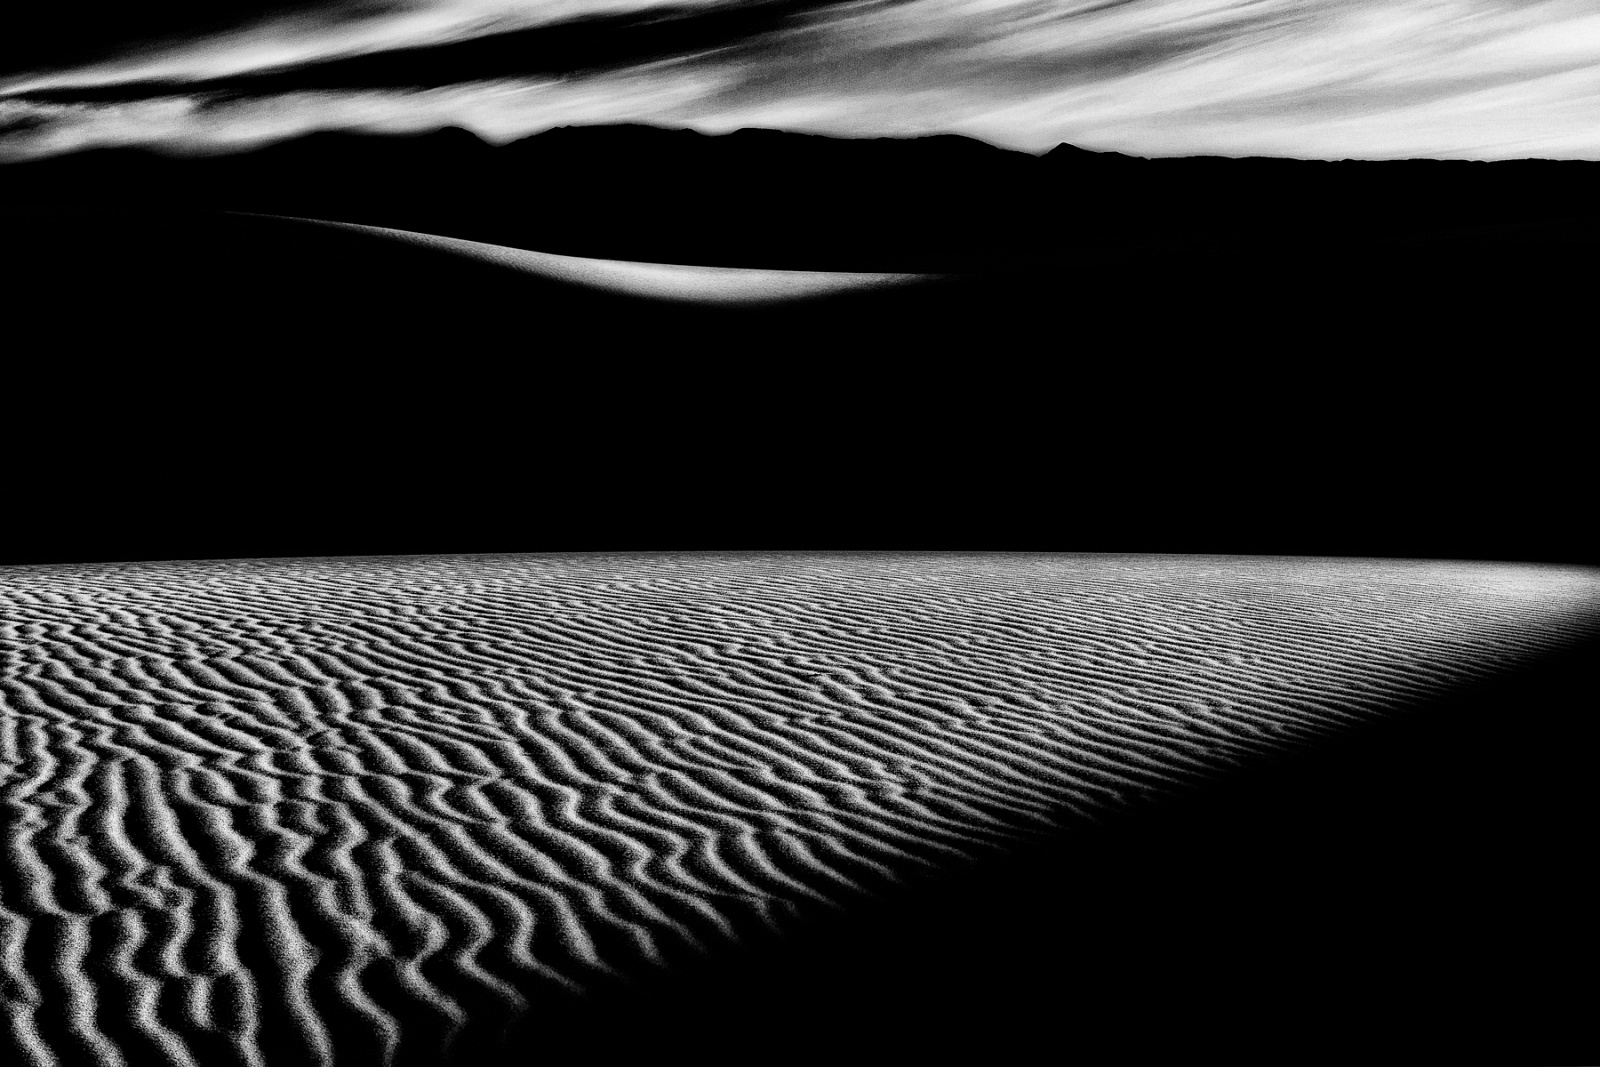 Somewhere On The Planet Earth #1 - Mesquite Dunes, California, 2012